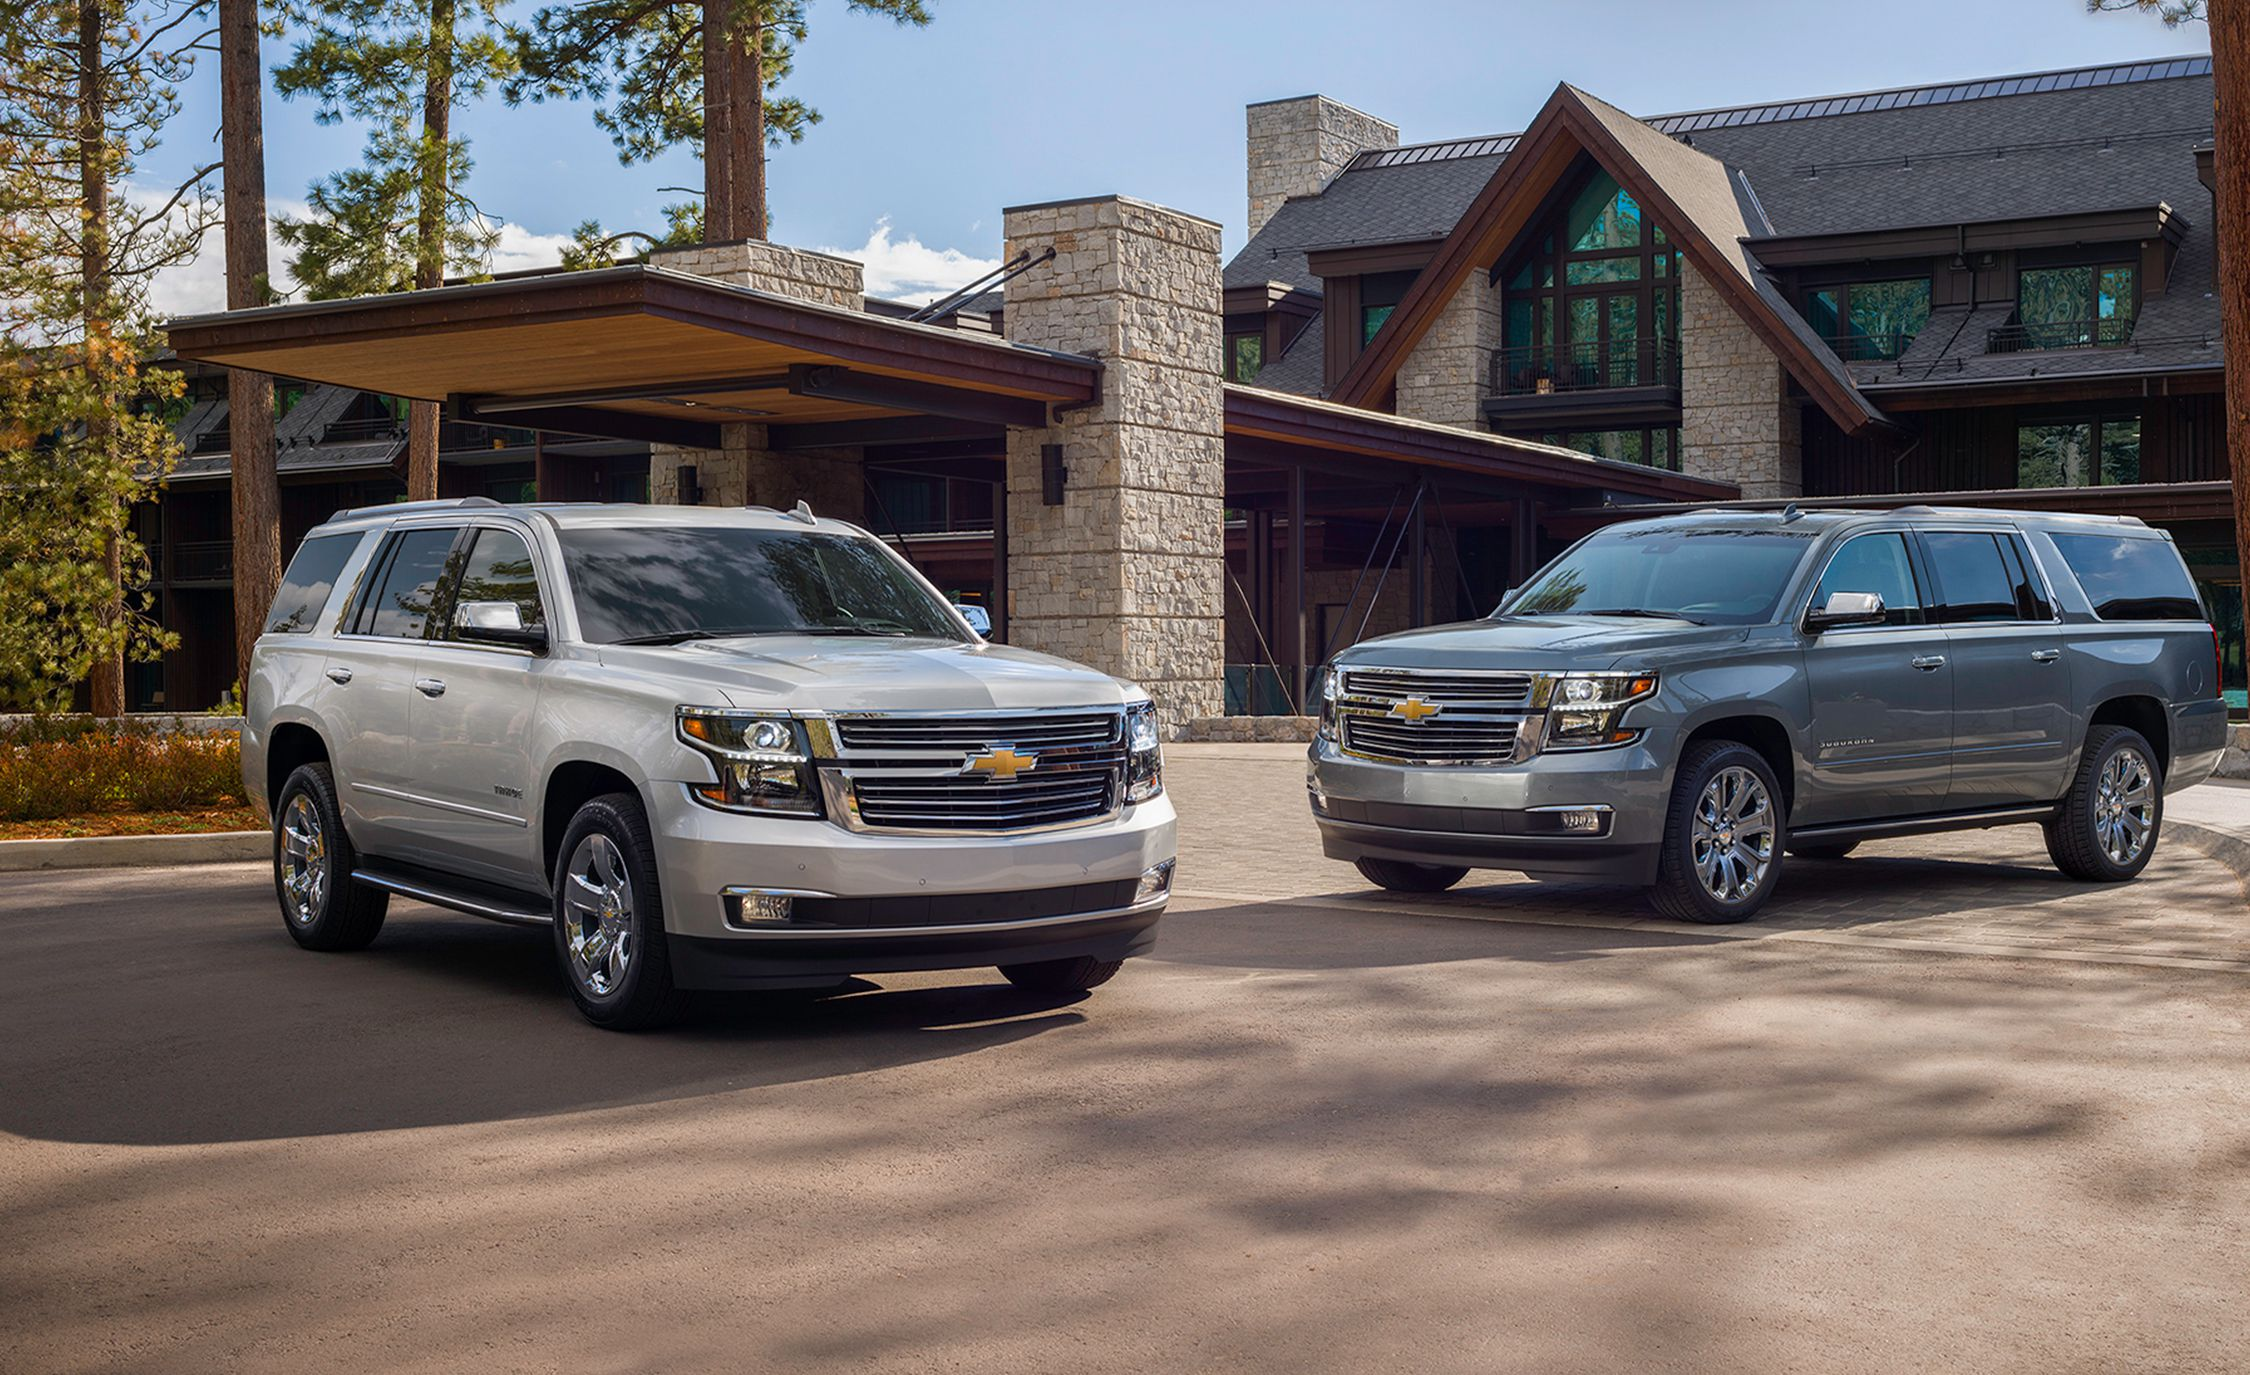 2019 Chevy Suburban and Tahoe